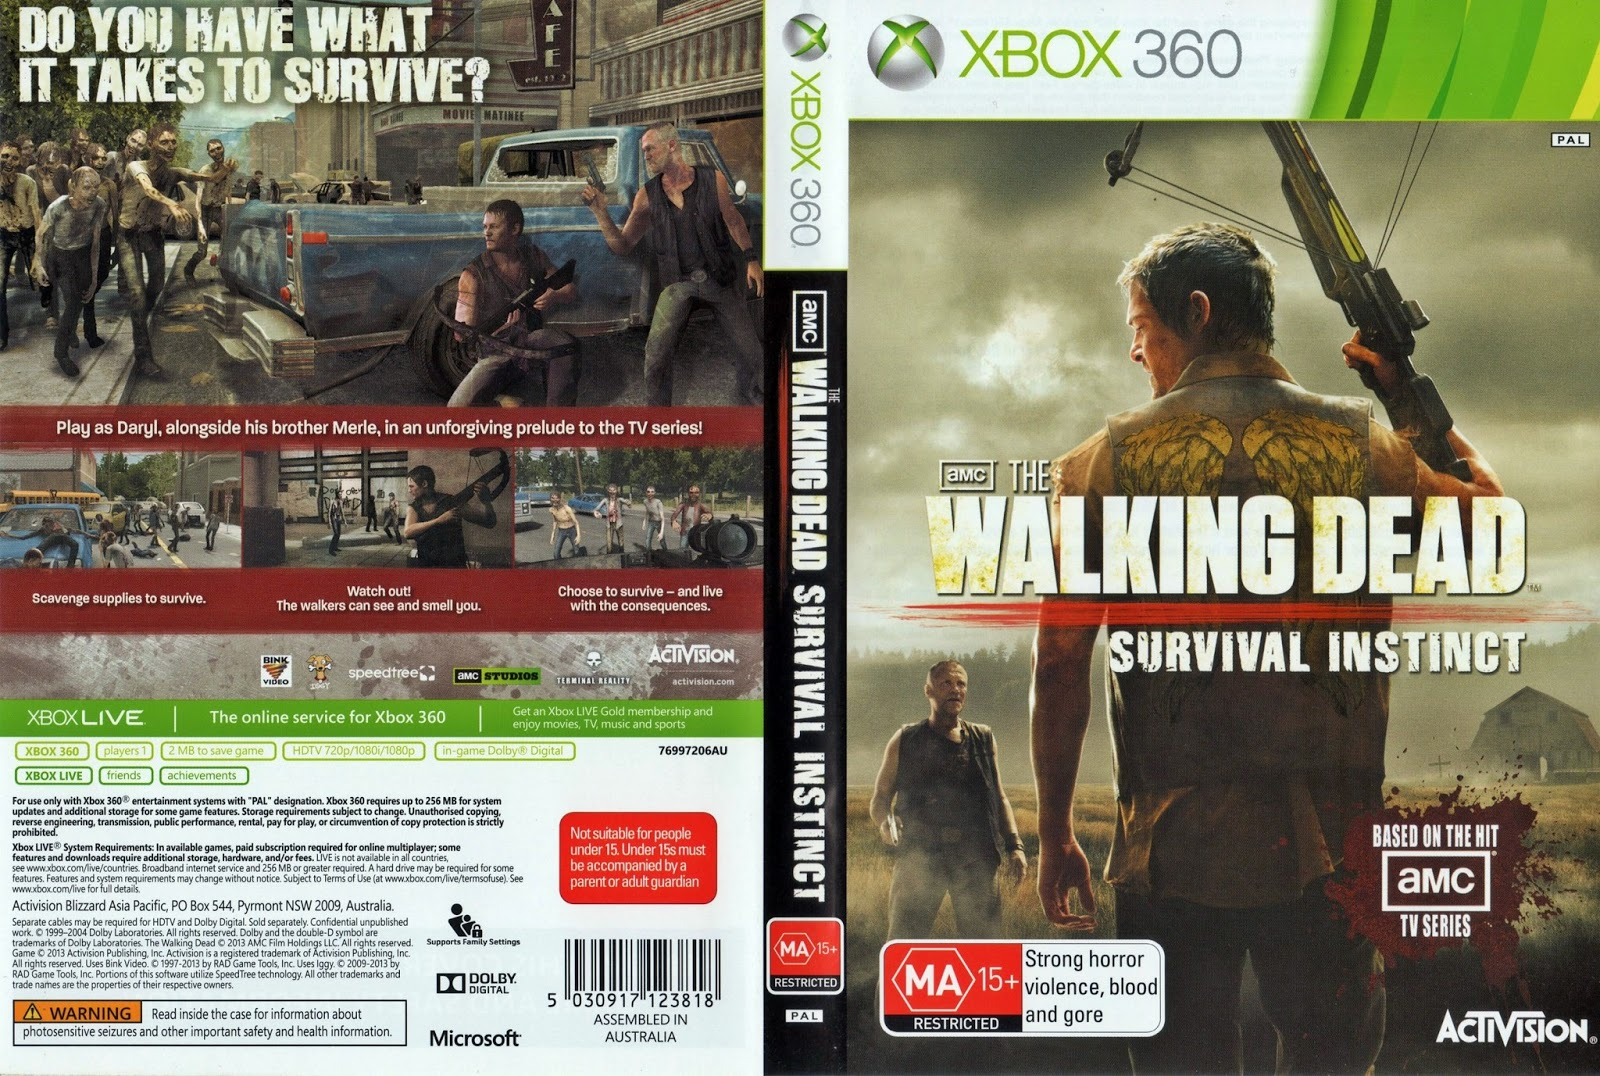 the walking dead survival instinct wii u download